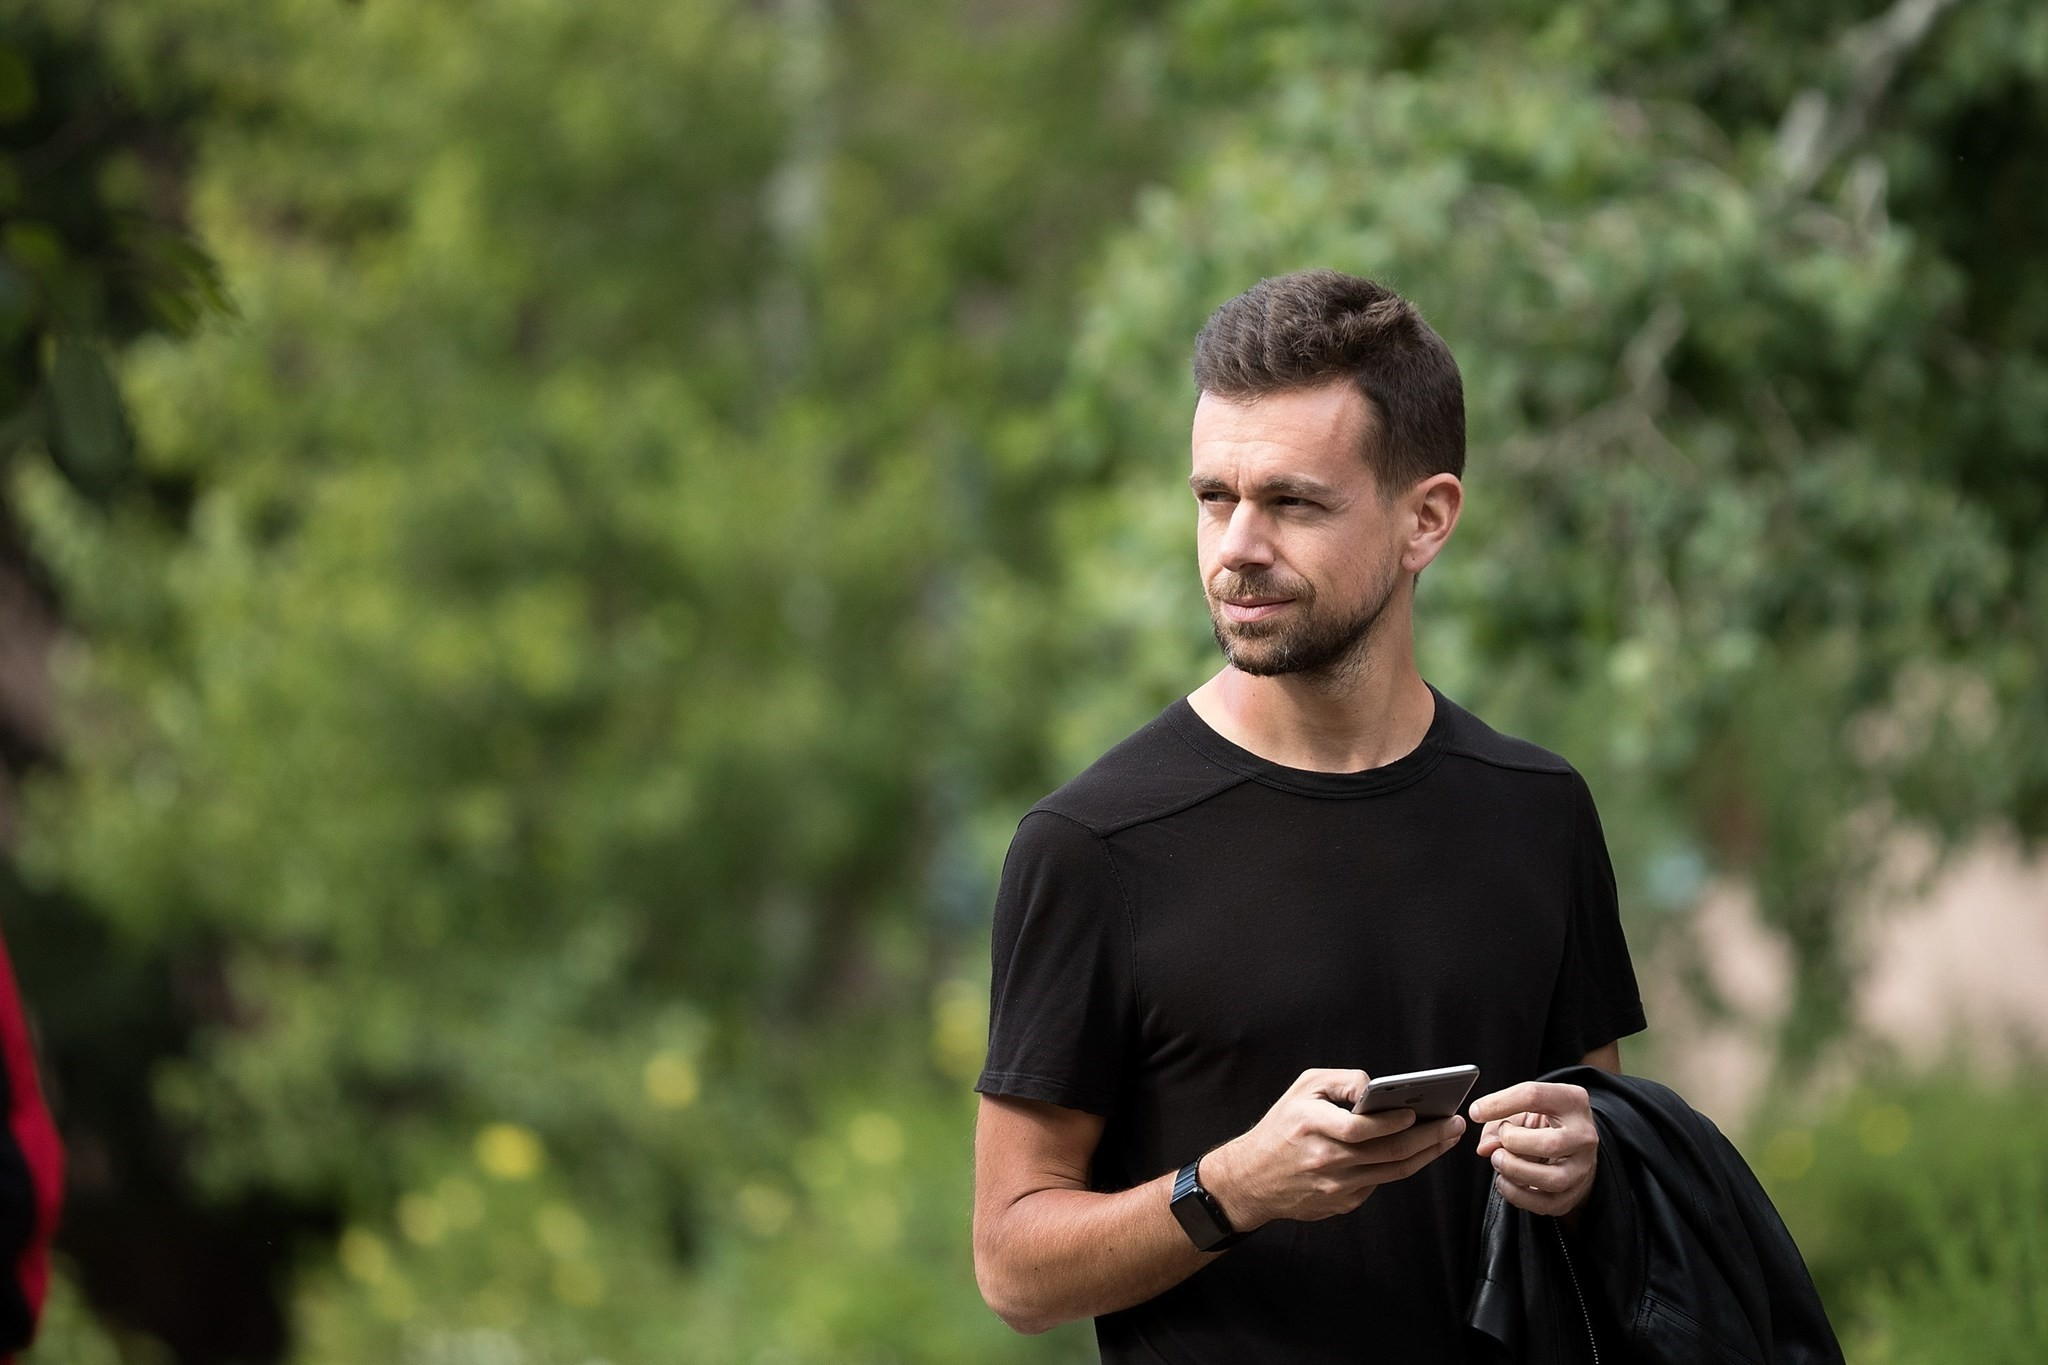 Jack Dorsey, co-founder and chief executive officer of Twitter, attends the annual Allen & Company Sun Valley Conference, July 6, 2016. (AFP Photo)